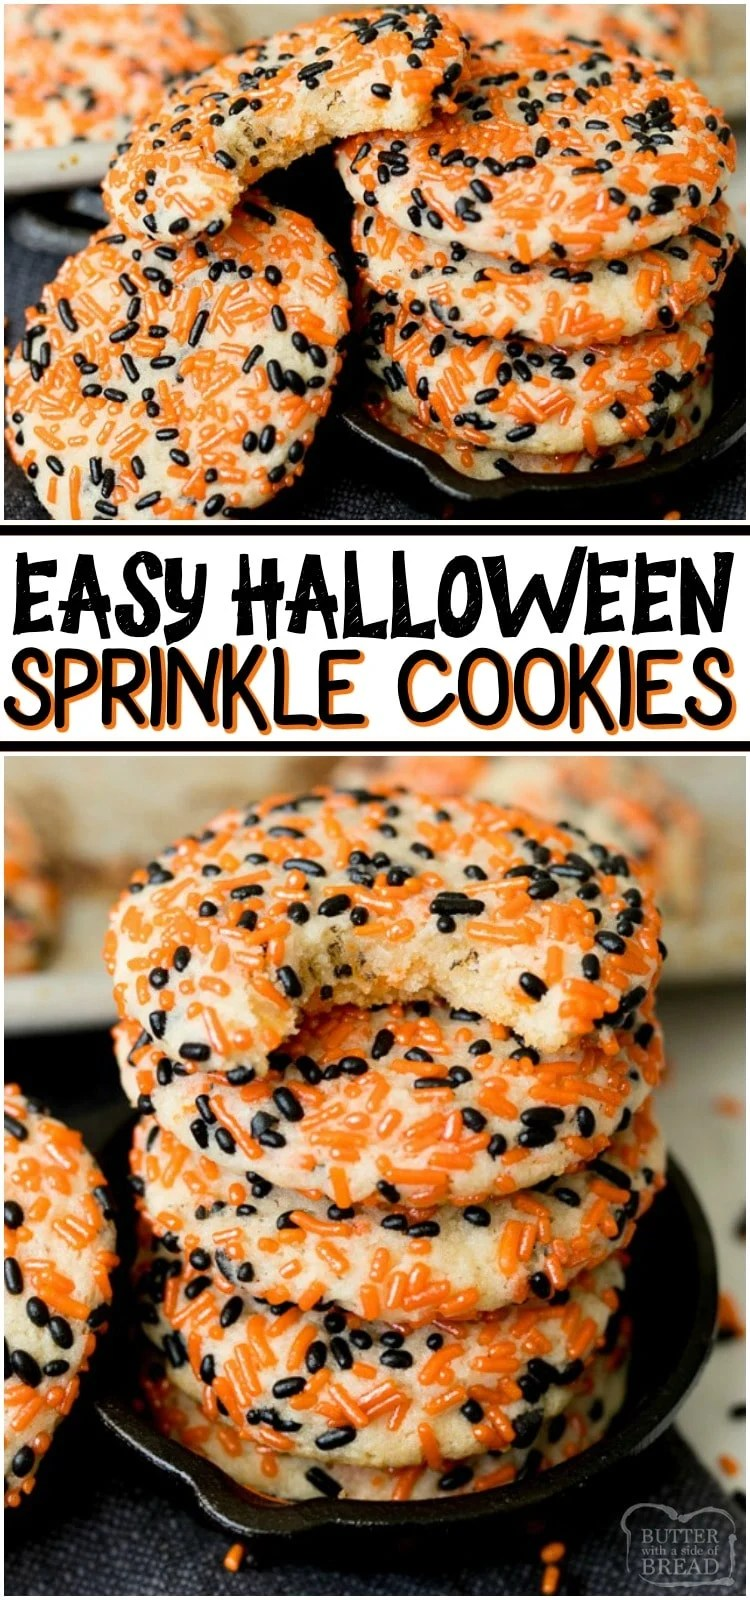 Halloween Sprinkle Cookies are a festive & sweet way to celebrate Halloween! Soft, easy Halloween cookie recipe covered in orange and black sprinkles then baked to cookie perfection.